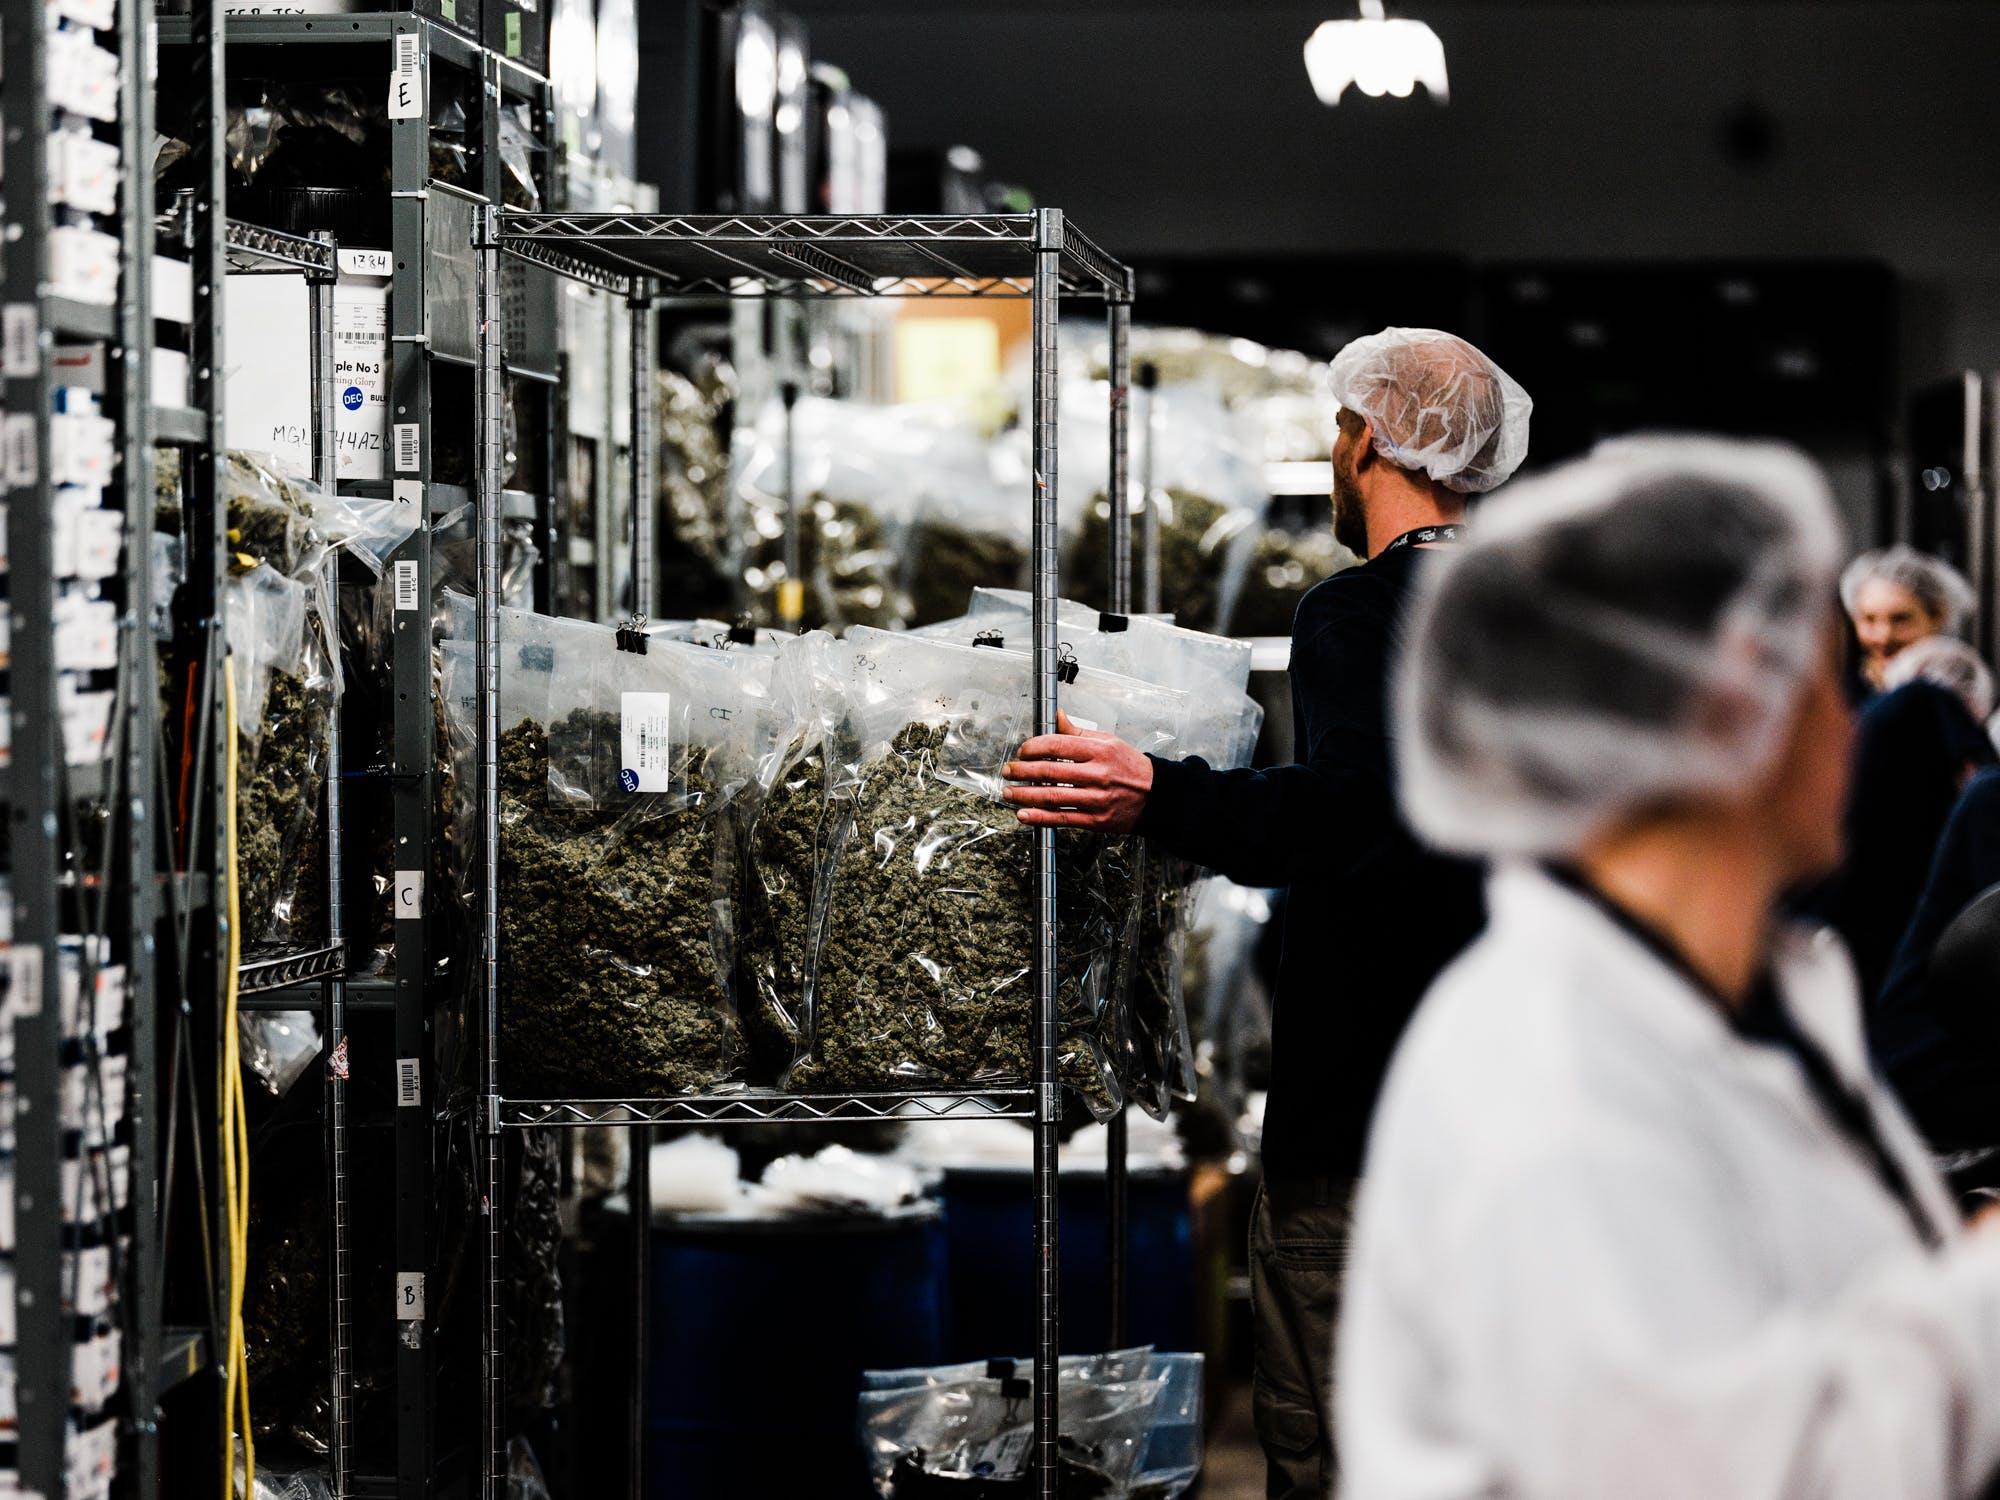 Canada Isnt Licensing Cannabis Cultivation Sites Fast Enough To Meet Demand1 California Considers Licensing Its Own Banks For The Cannabis Industry